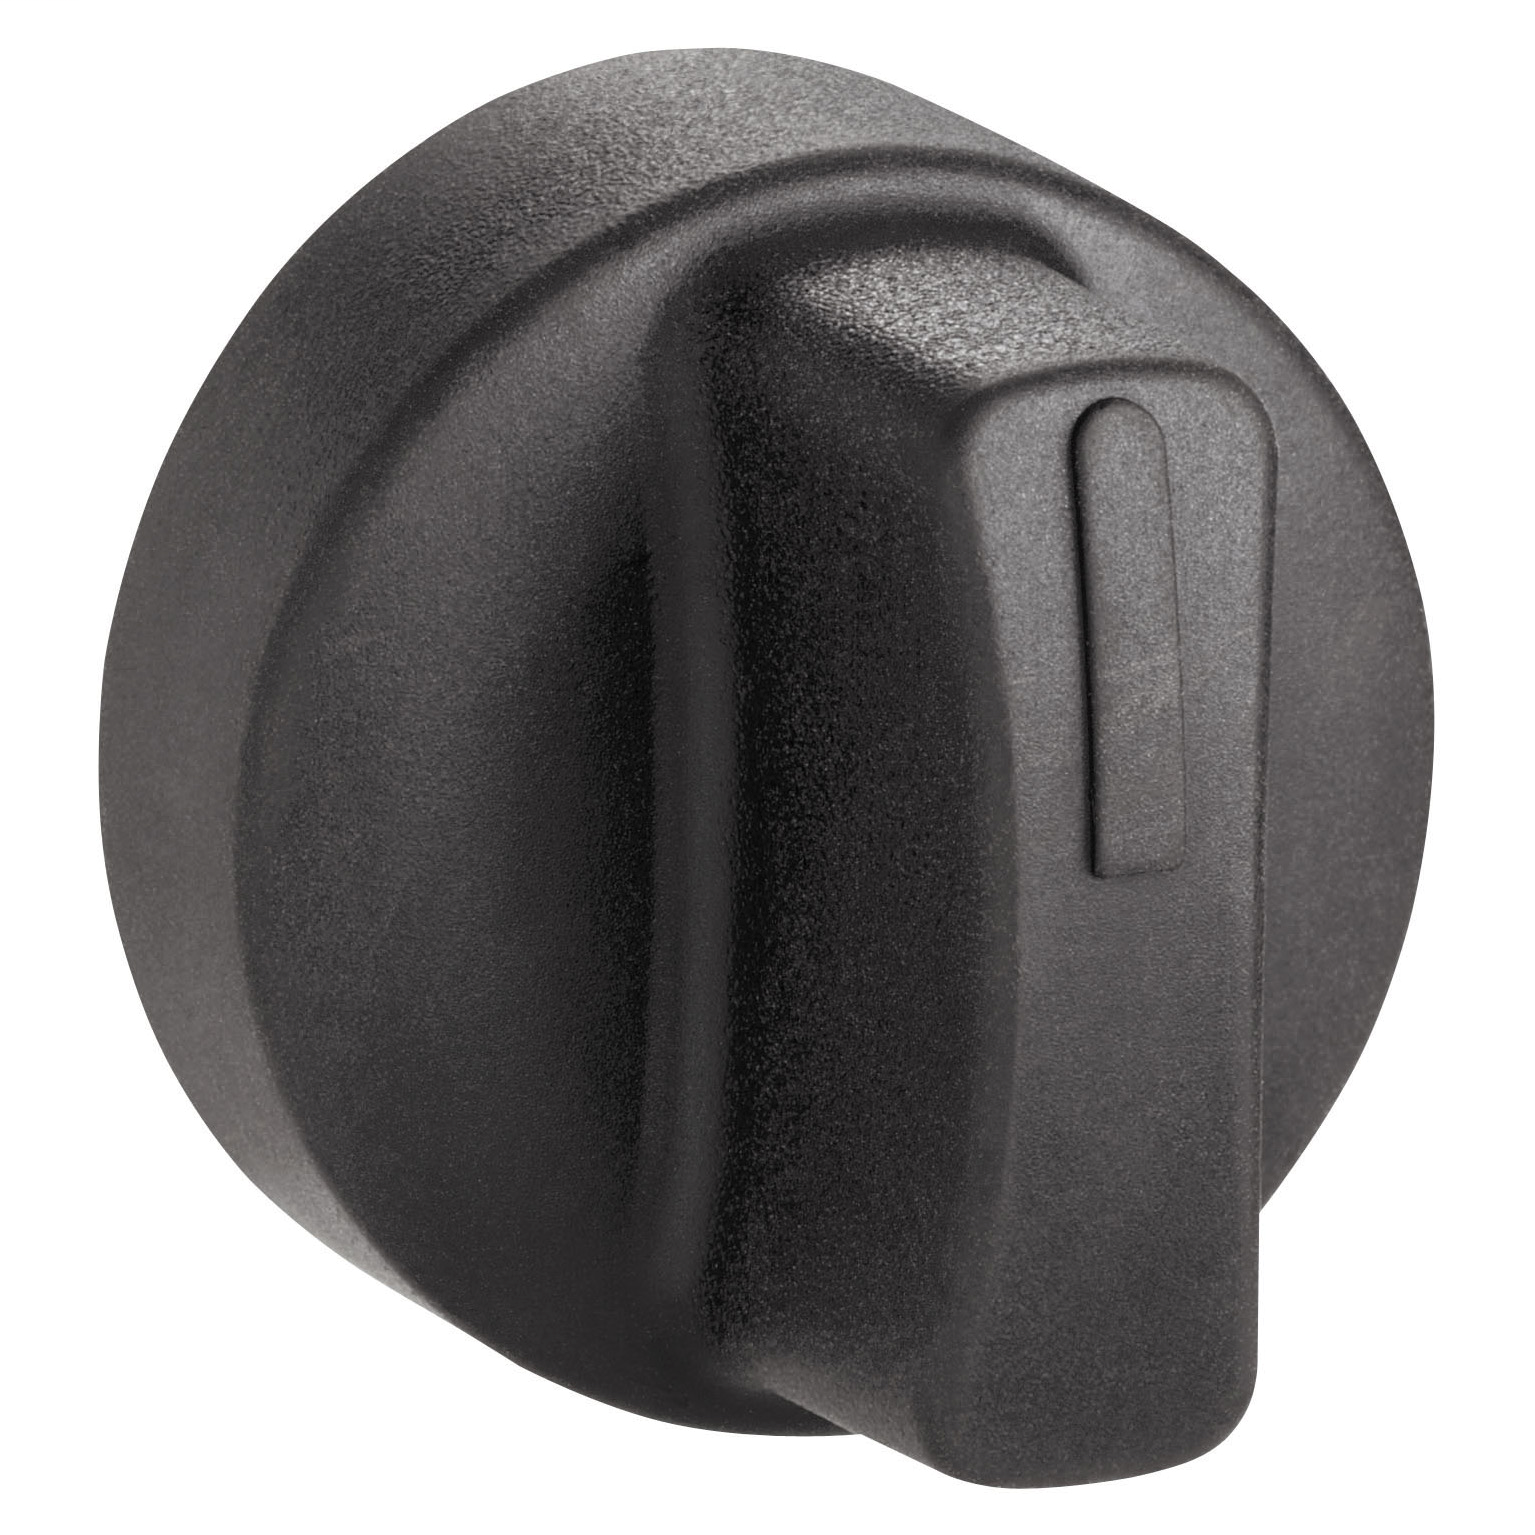 SQUARE D Black boot for standard handle selector switch Ø22